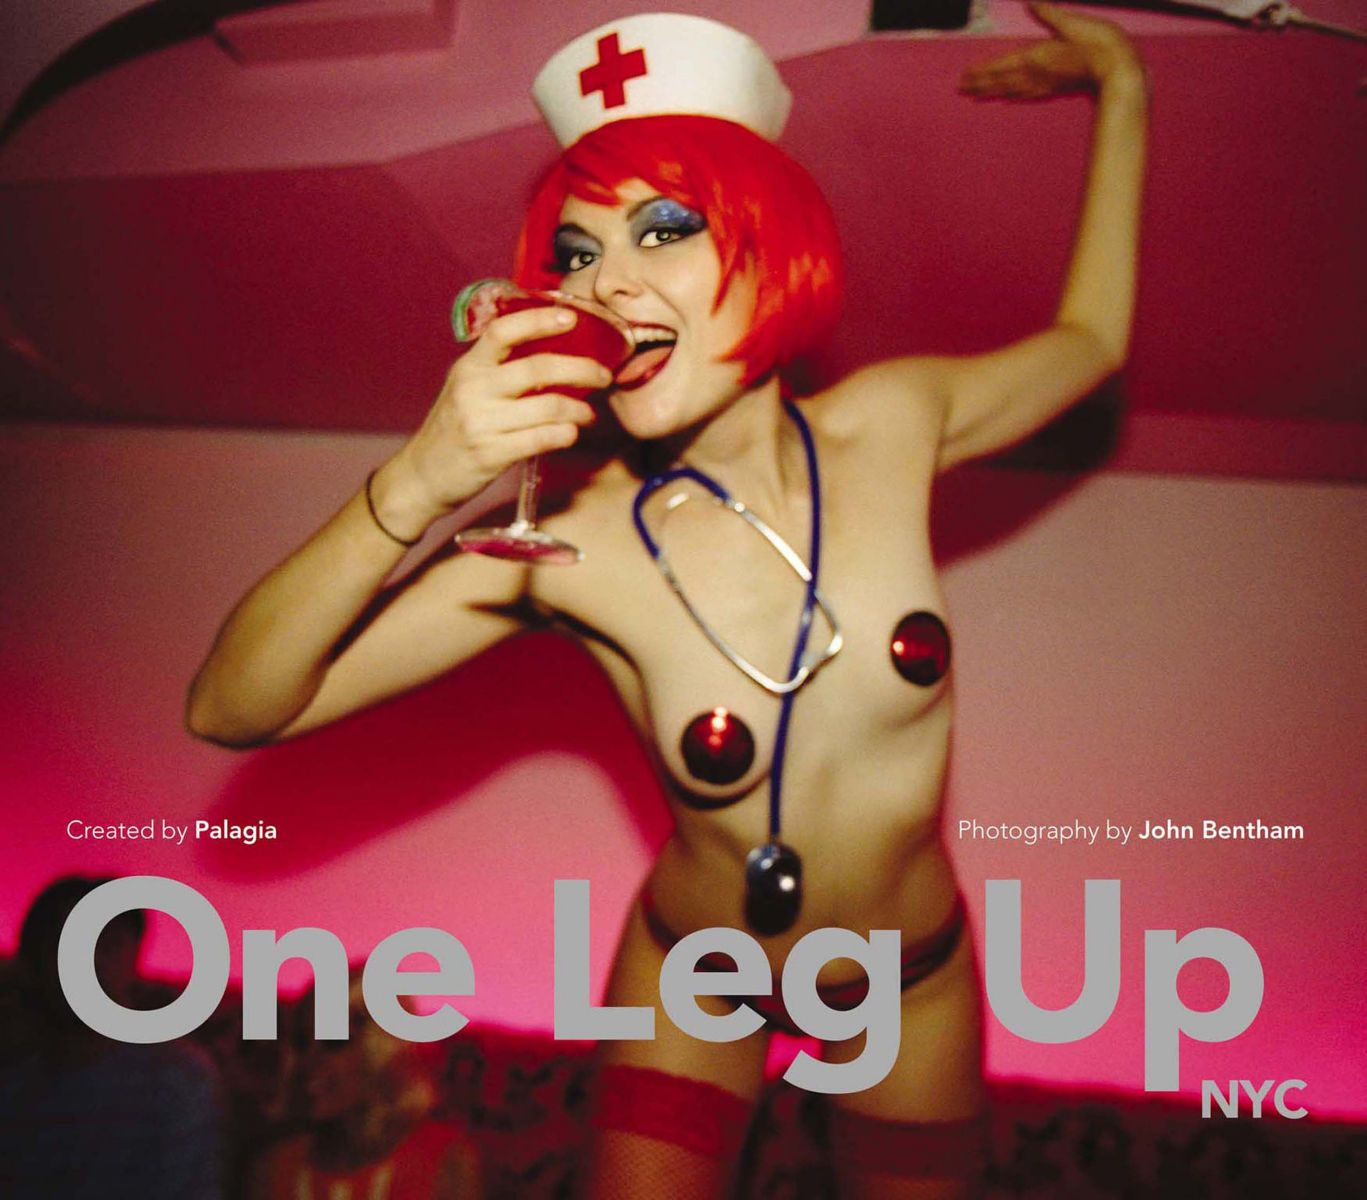 One Leg Up NYC Social Club